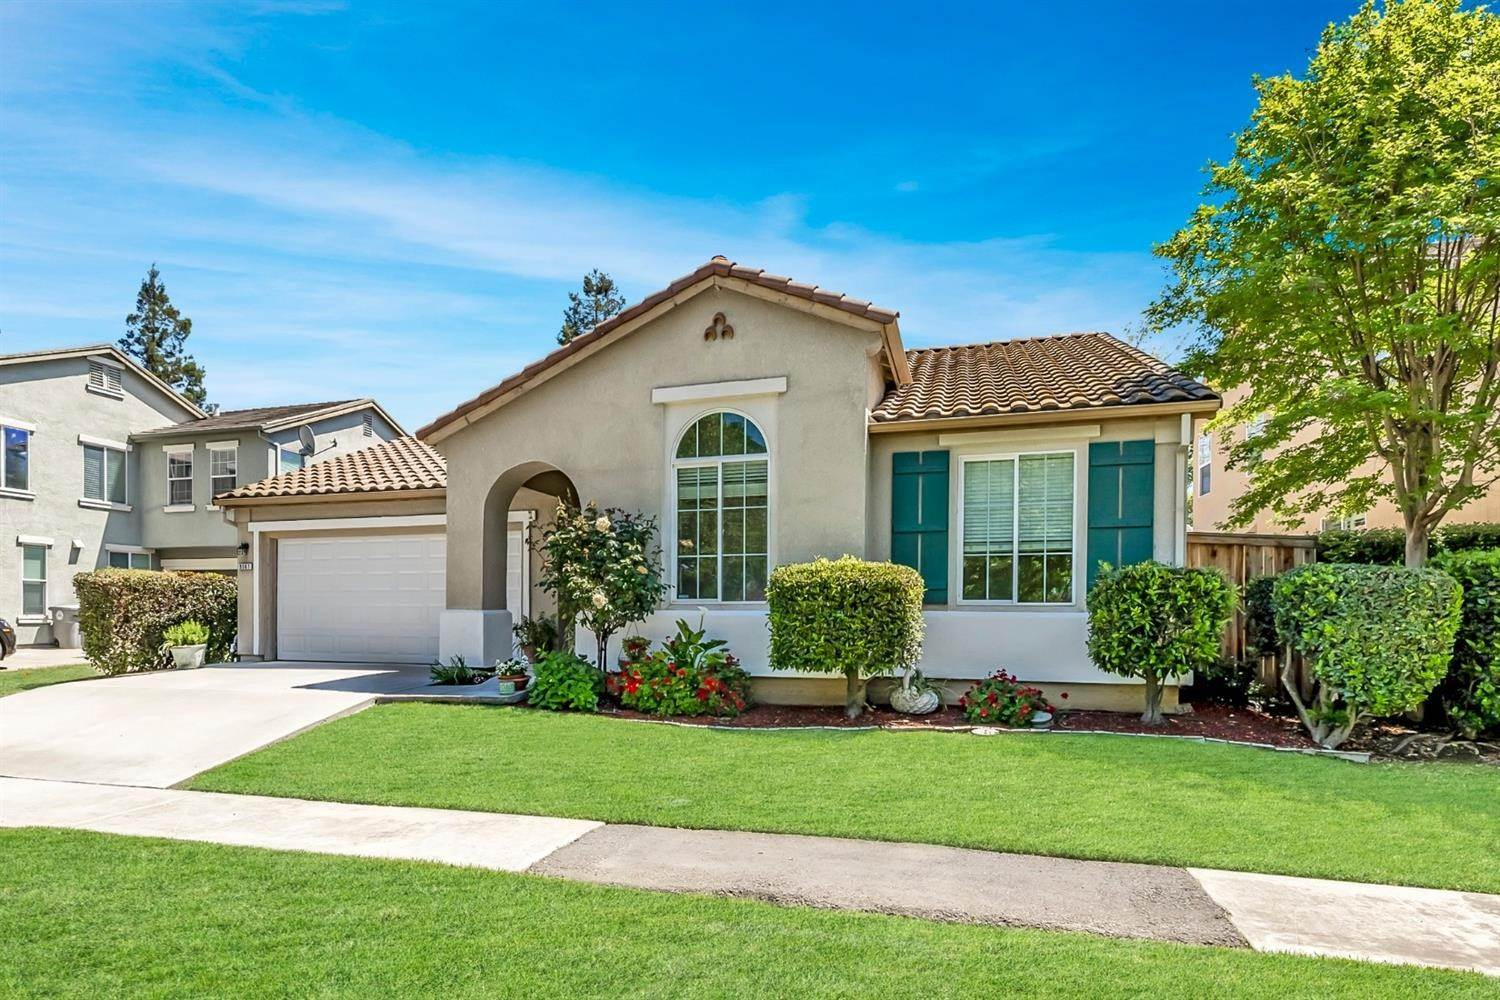 4. Single Family Homes for Active at 9567 Baypoint Way Elk Grove, California 95624 United States